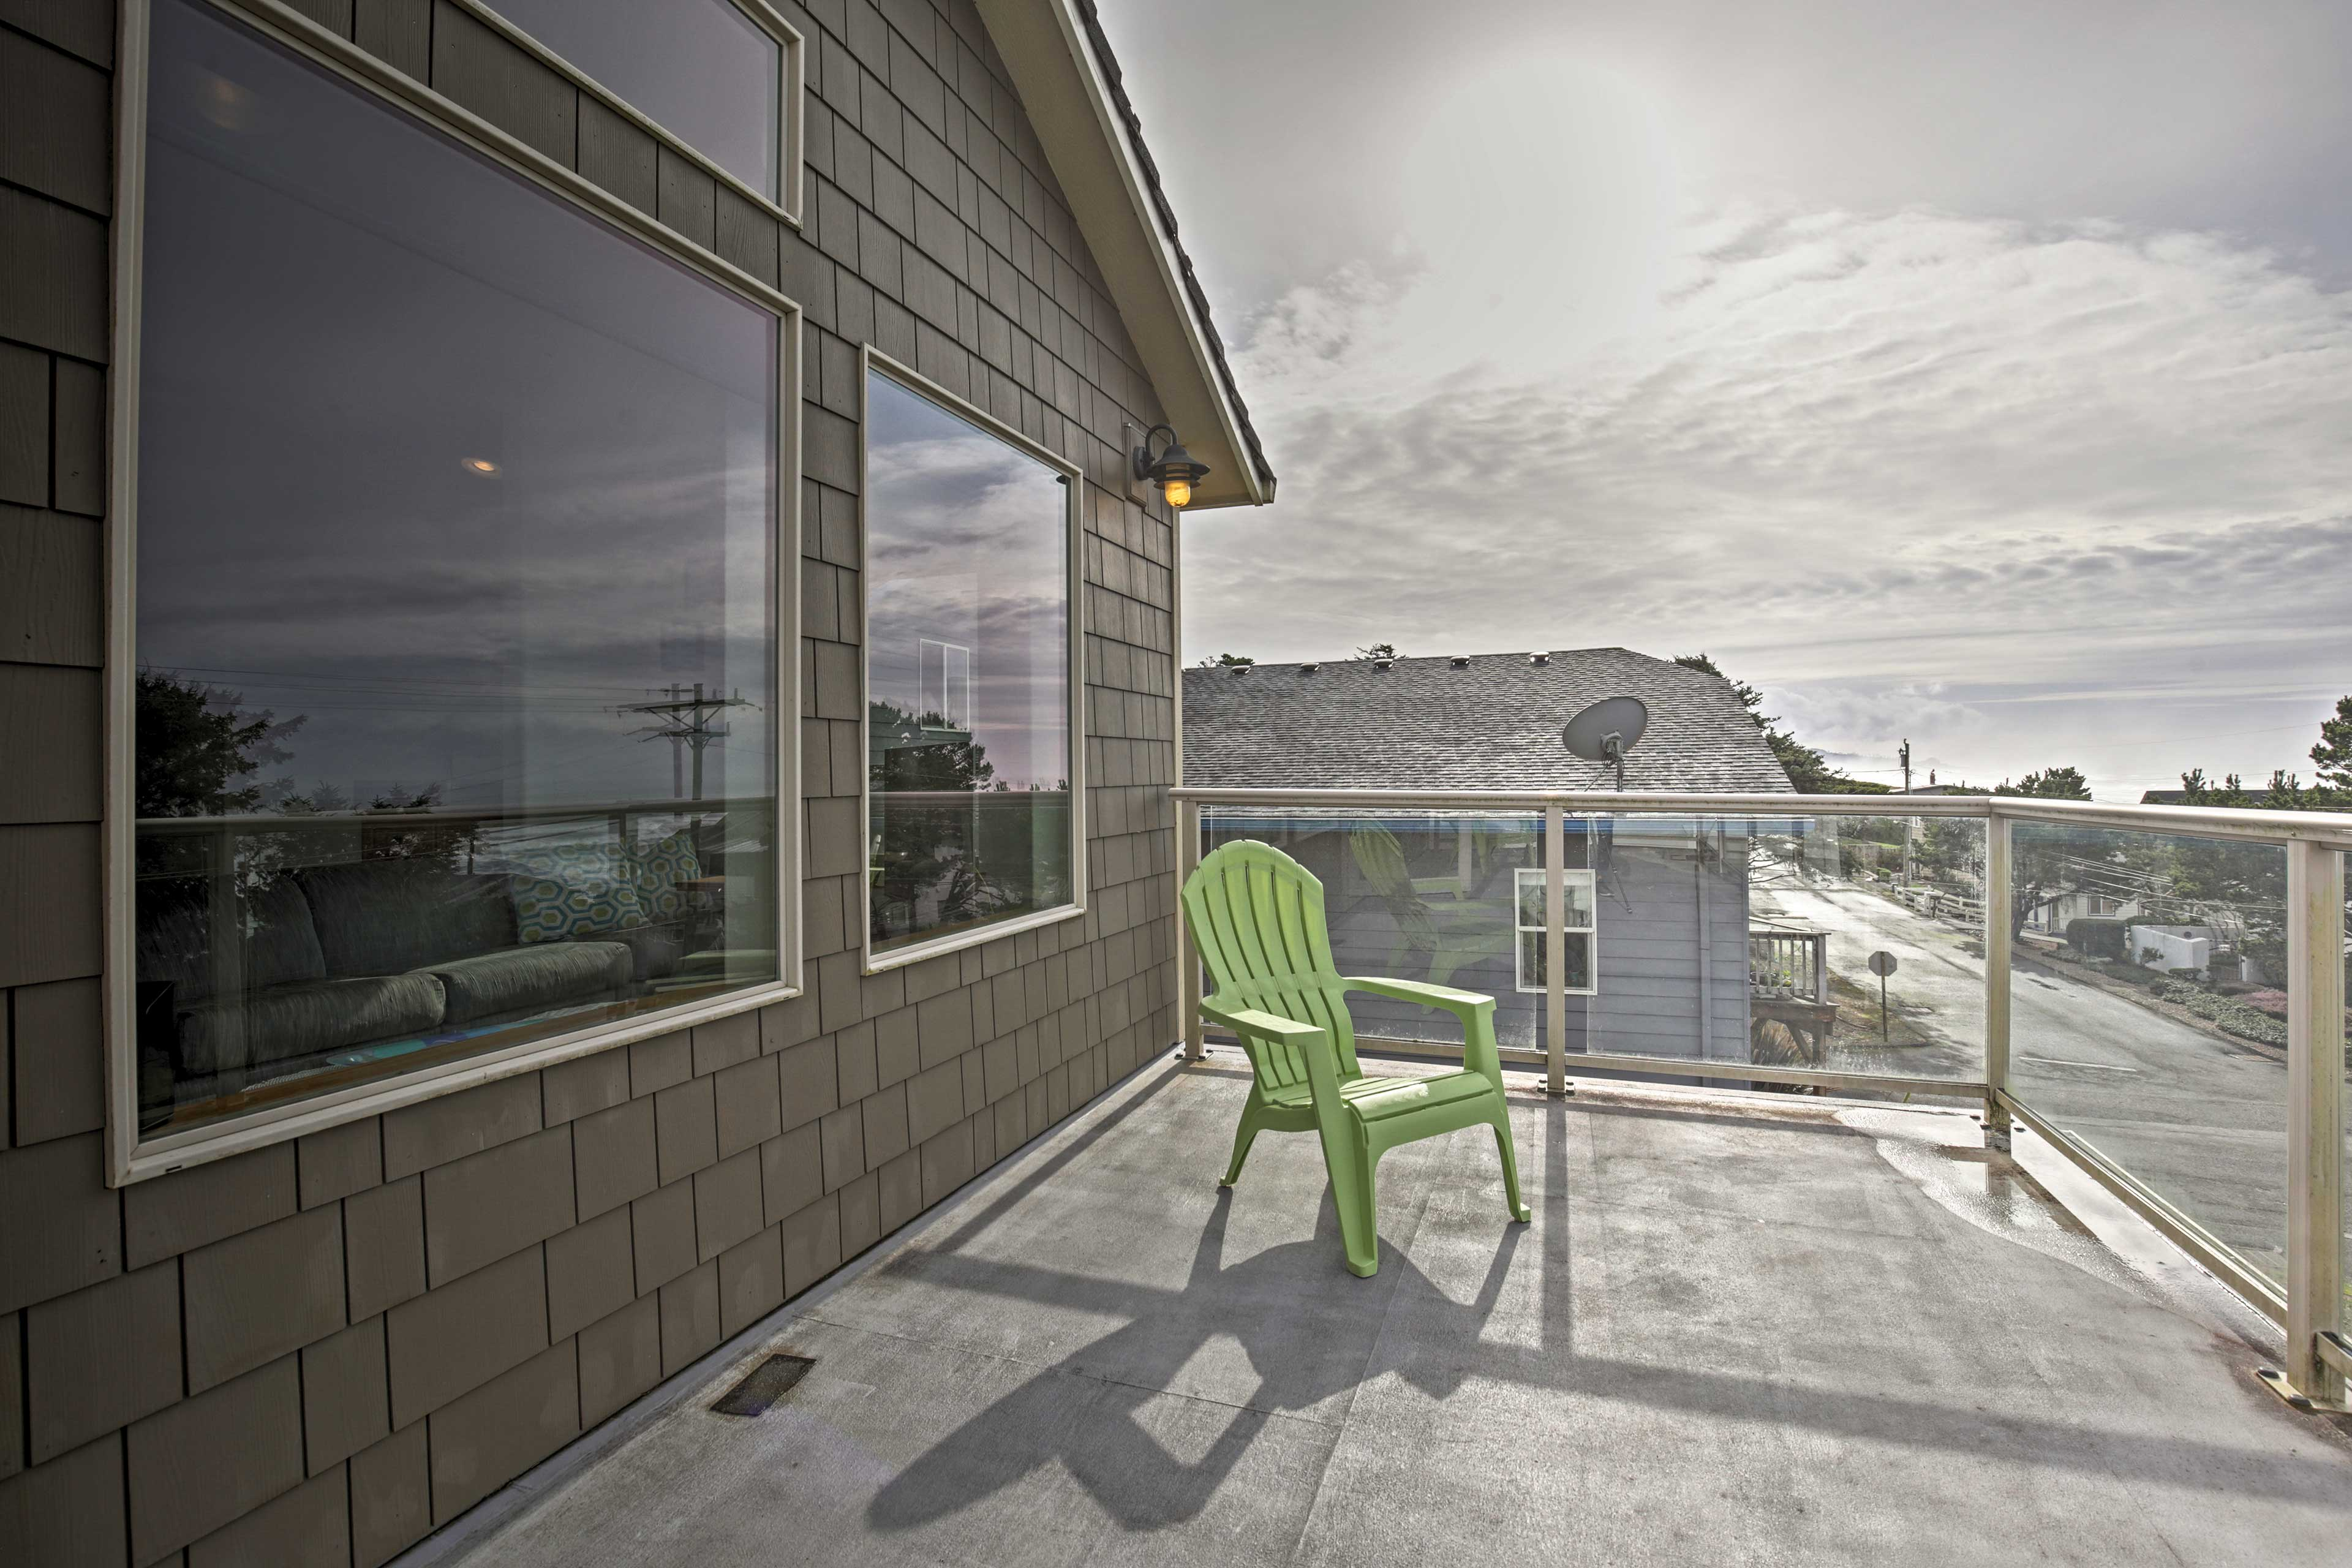 Revel in fresh air and stunning views from the spacious deck.